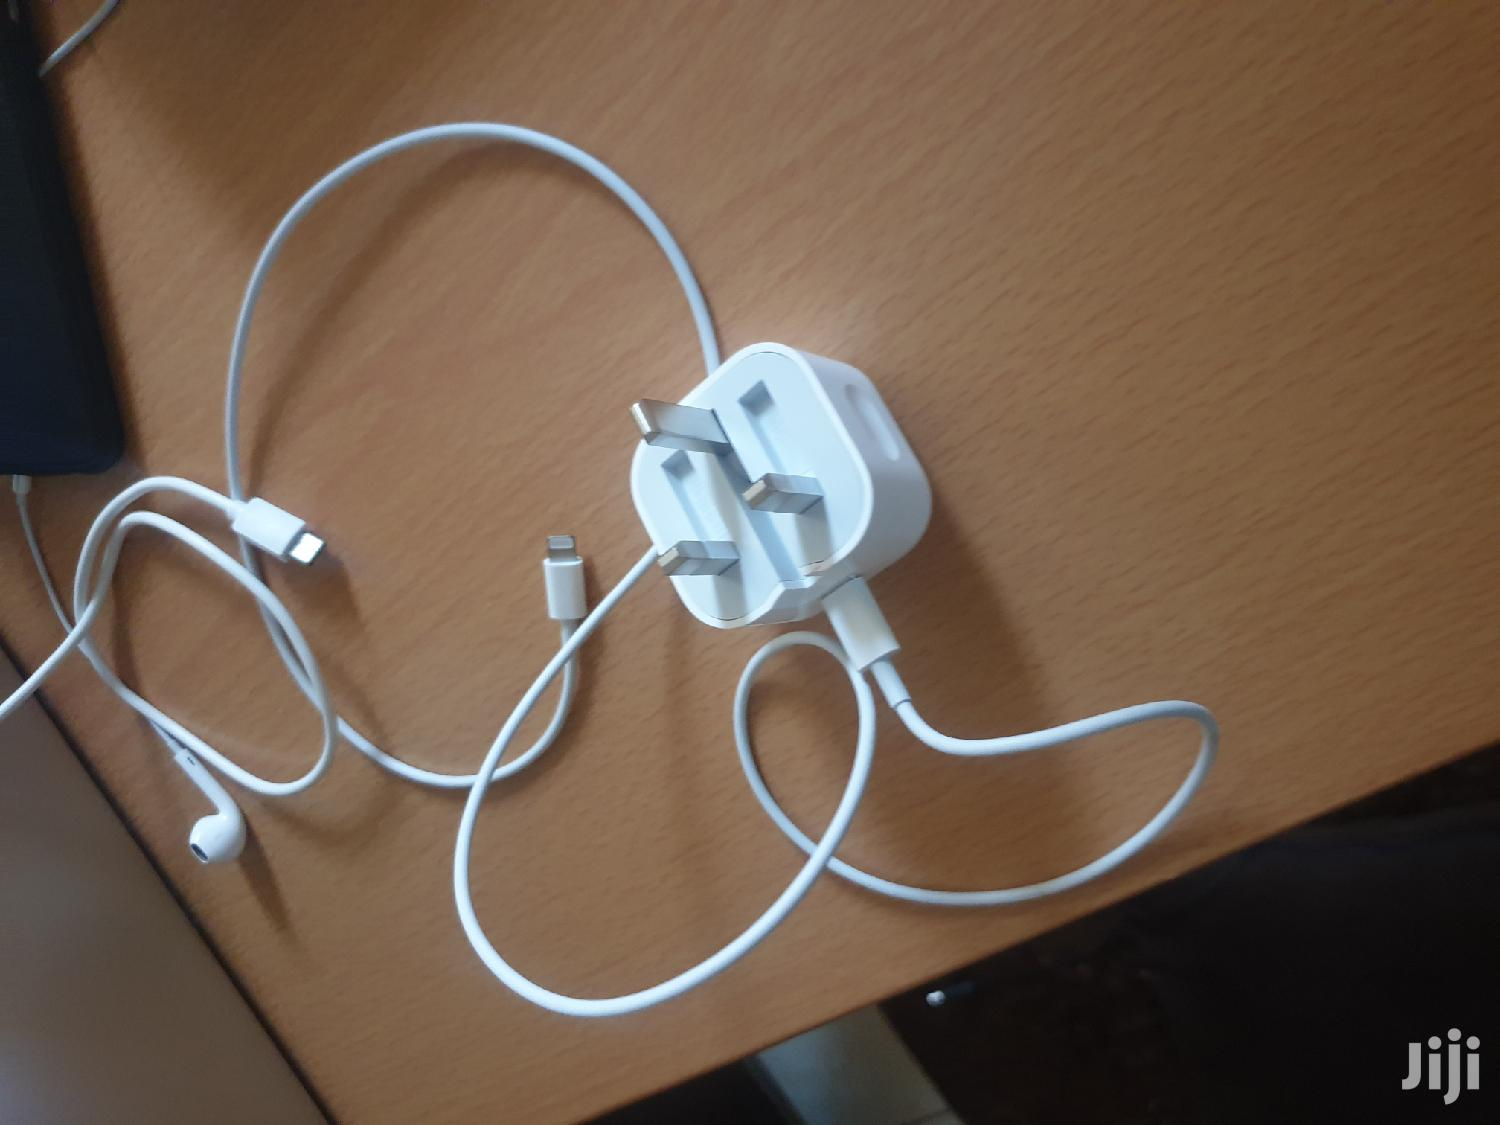 iPhone 11 Original Chargers | Accessories for Mobile Phones & Tablets for sale in Kampala, Central Region, Uganda